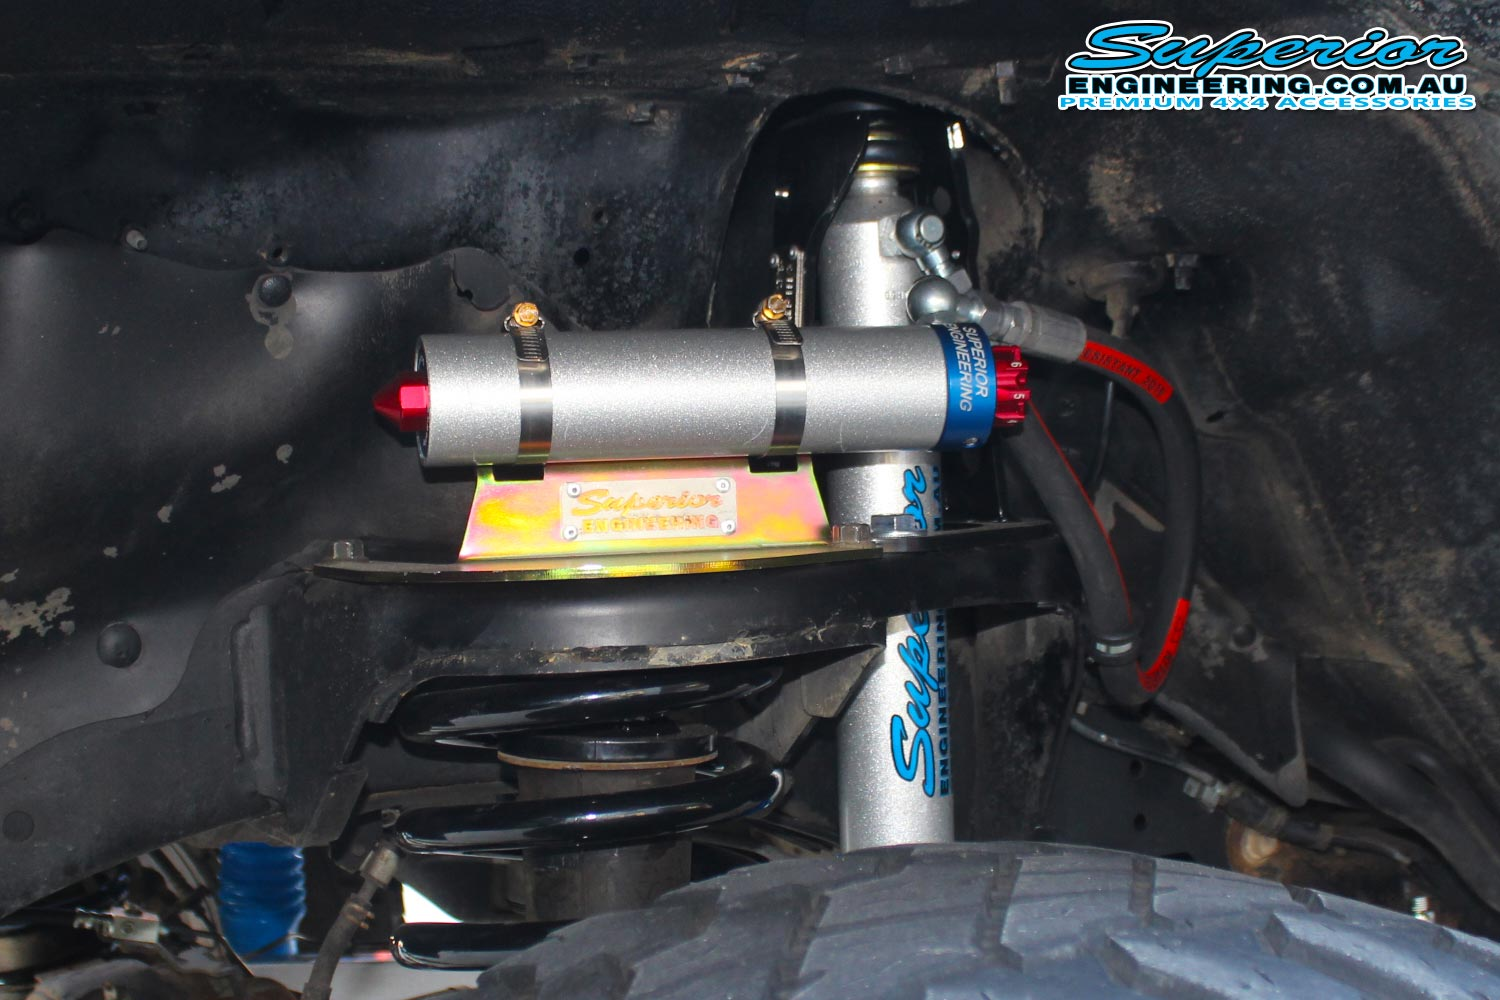 G35 Bose Wiring Diagram Together With 2003 Infiniti G35 Engine Wiring